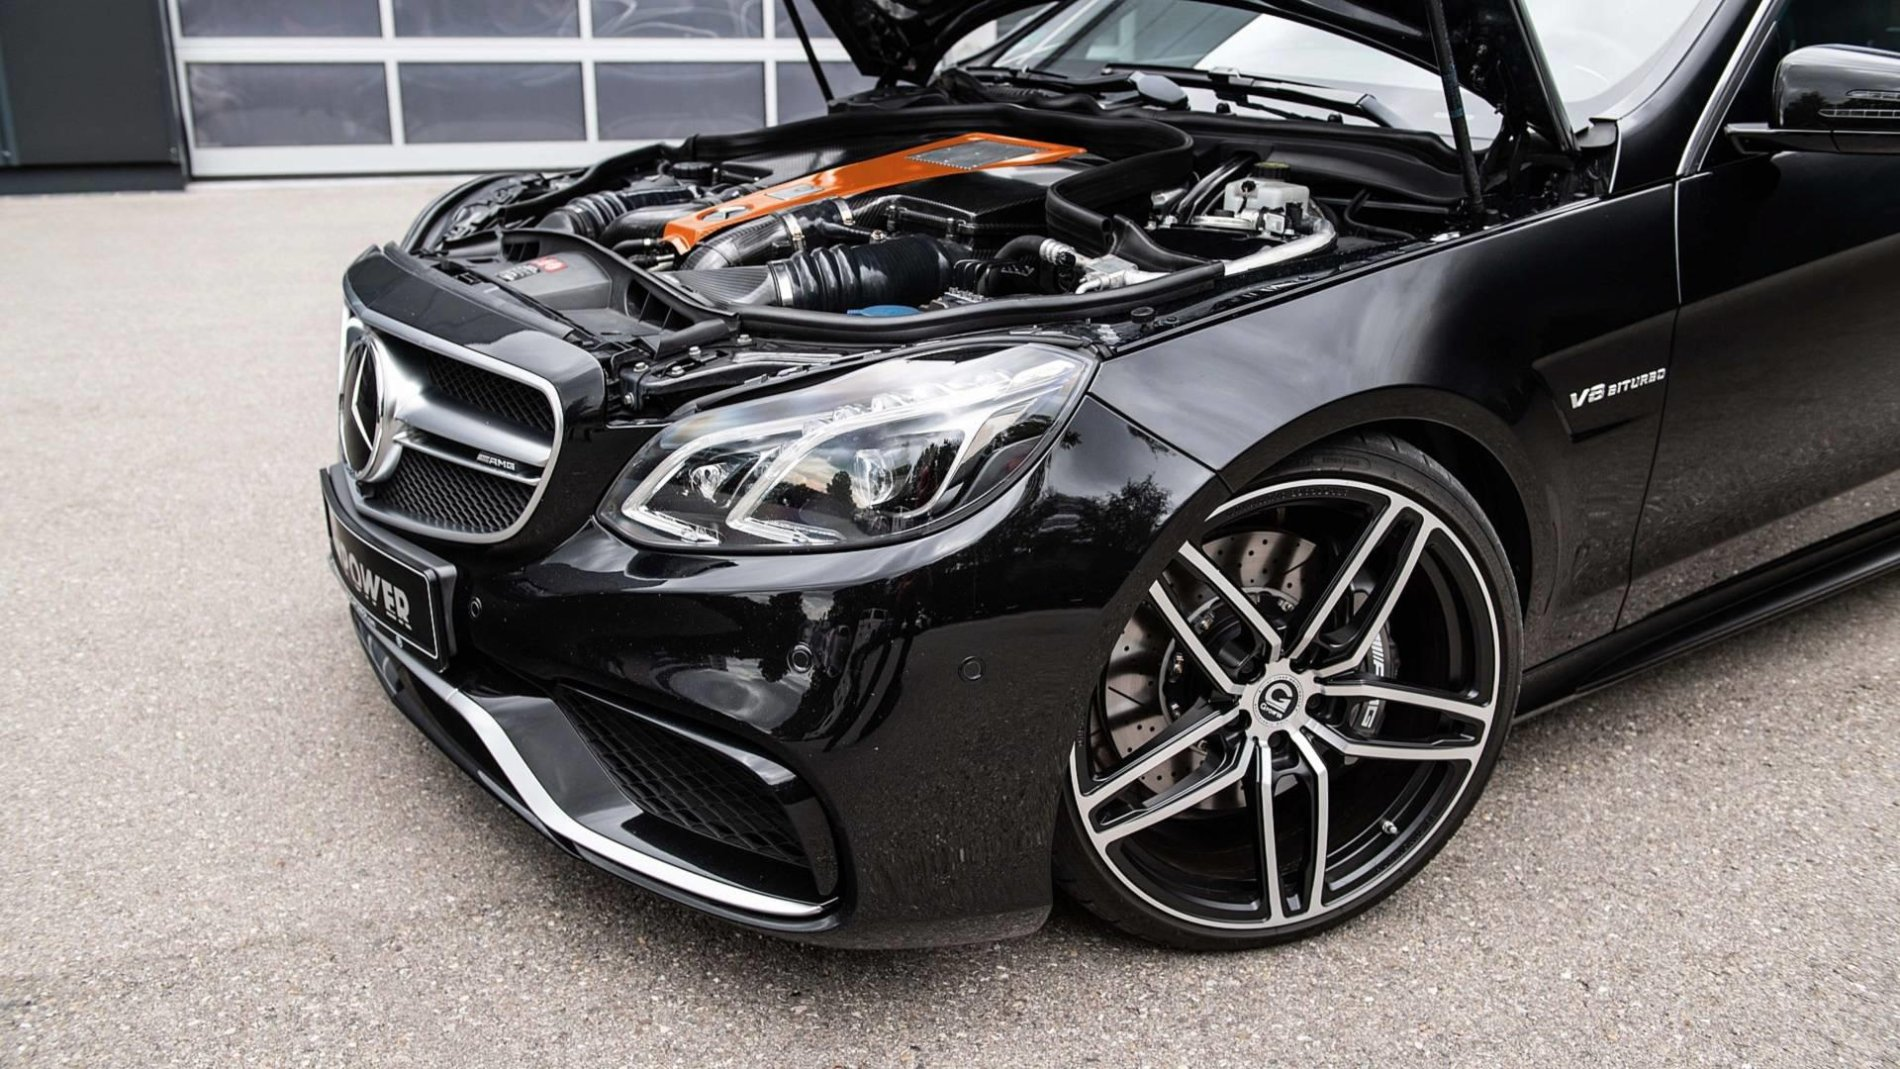 Mercedes-AMG E63 S by G-Power - Mercedes-AMG E63 S by G-Power